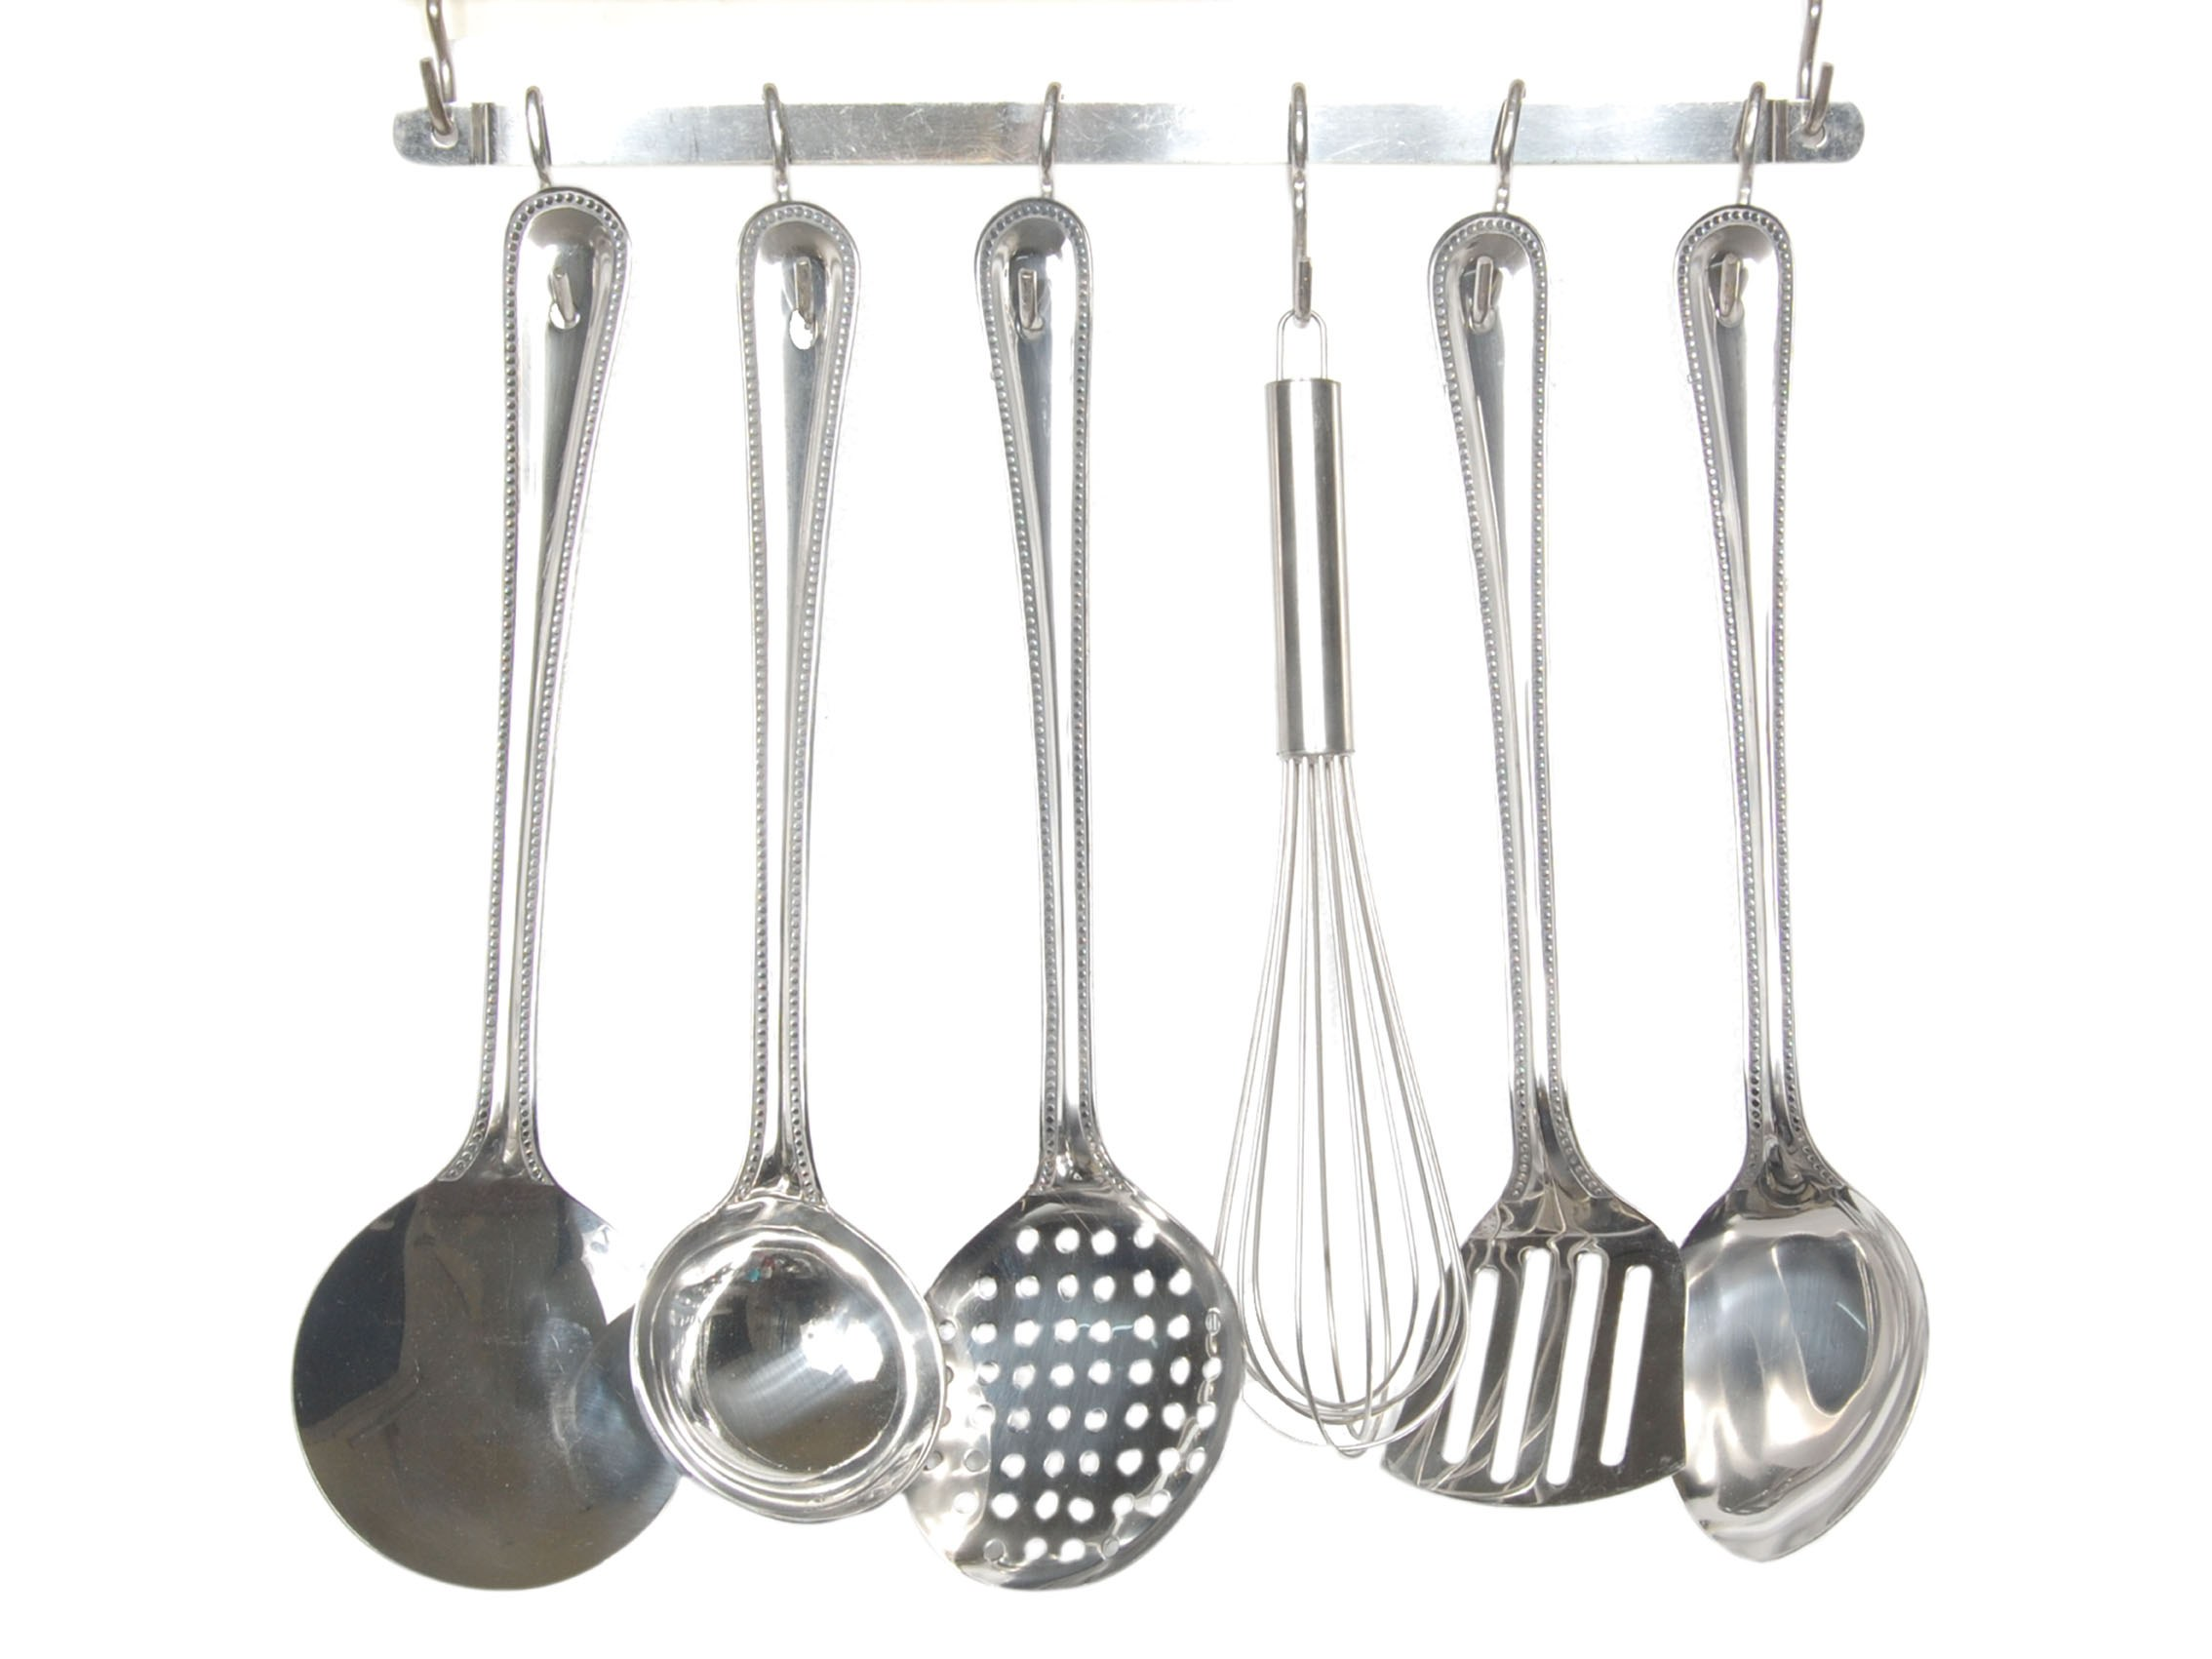 Home you 6 pcs kitchen tool set with rack 4825 online for Kitchen tool set of 6pcs sj